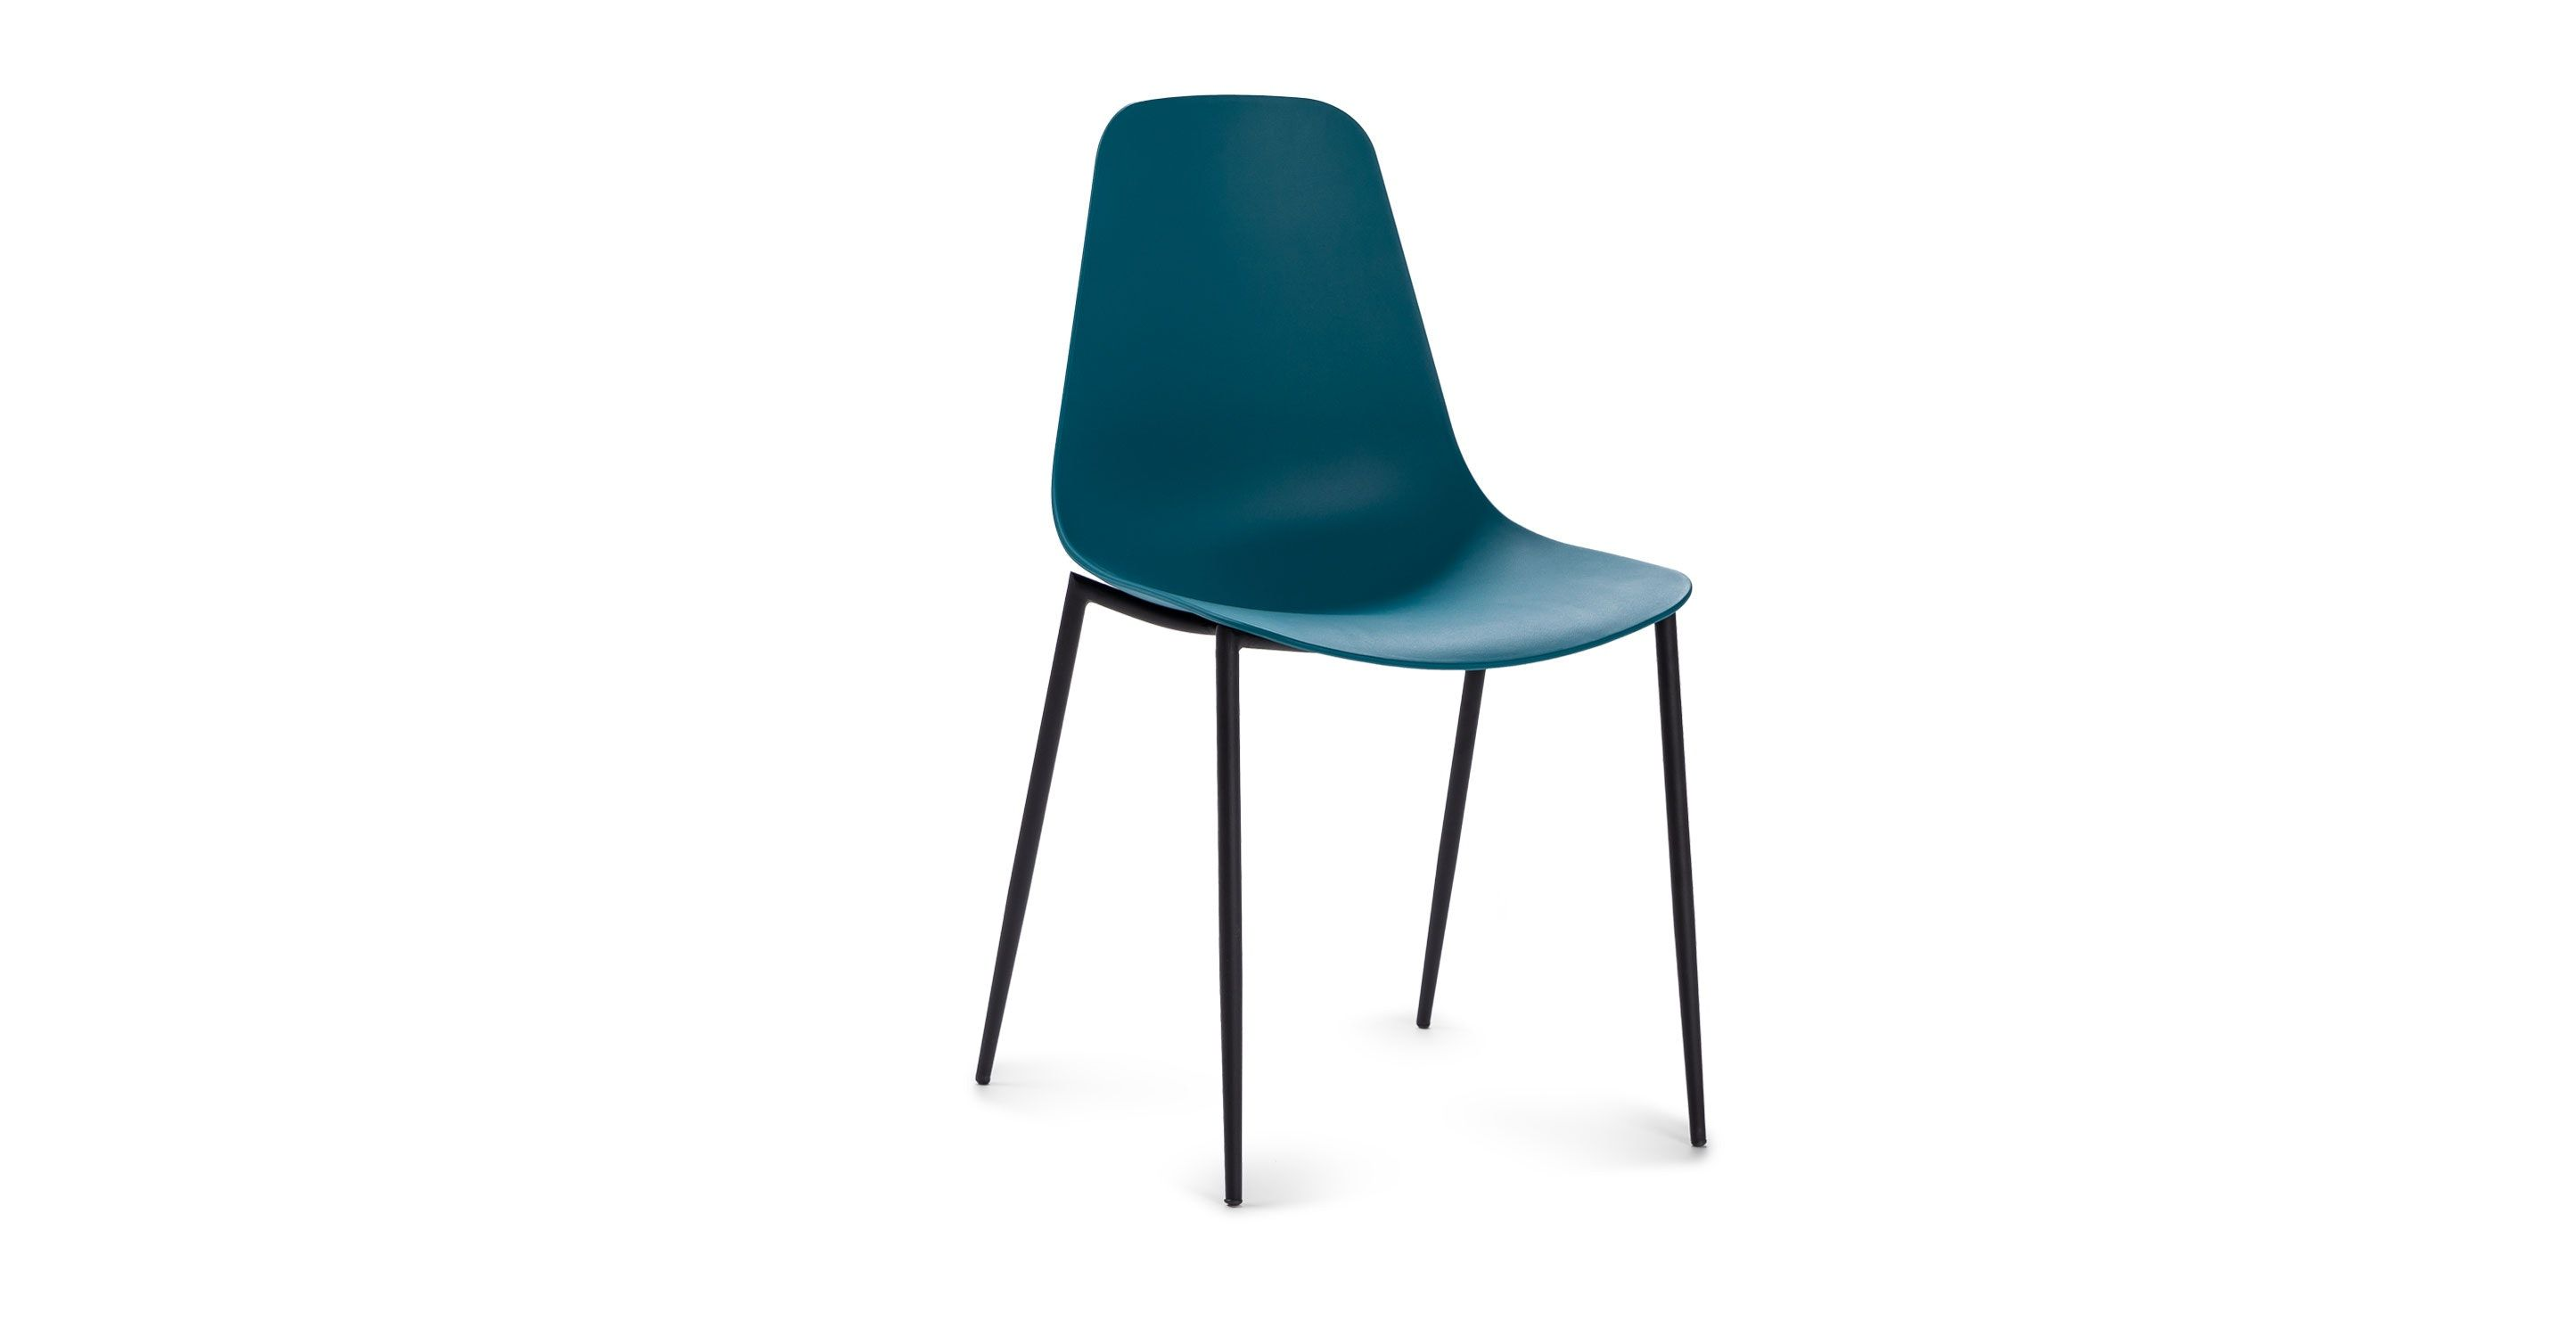 Teal Dining Chair - Article Svelti Modern Furniture